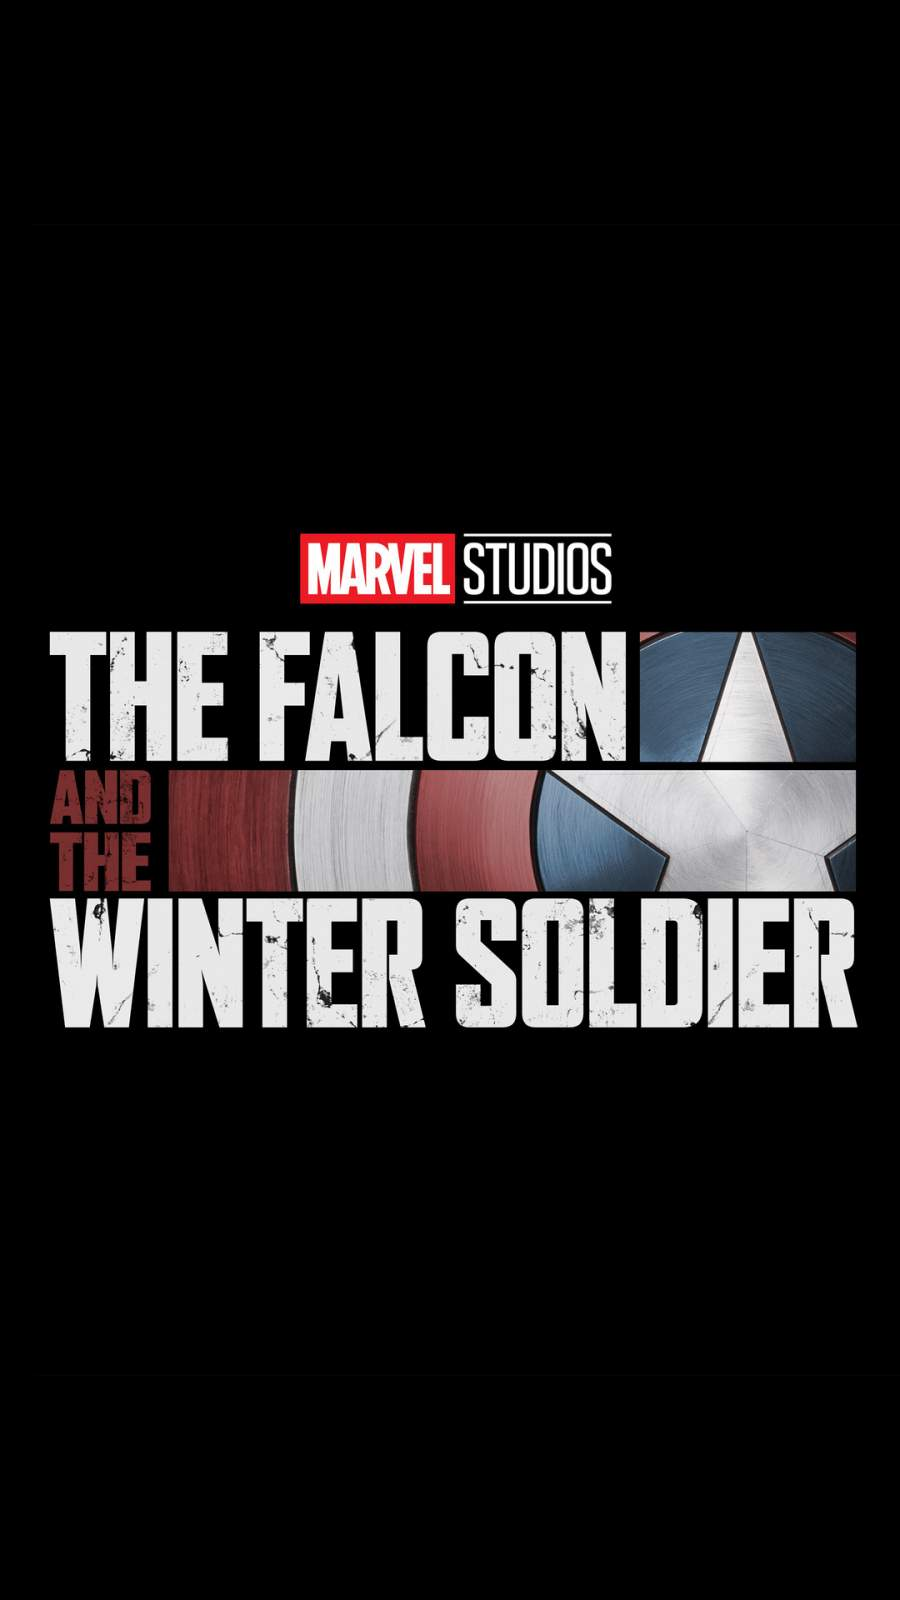 The Falcon and the Winter Solider